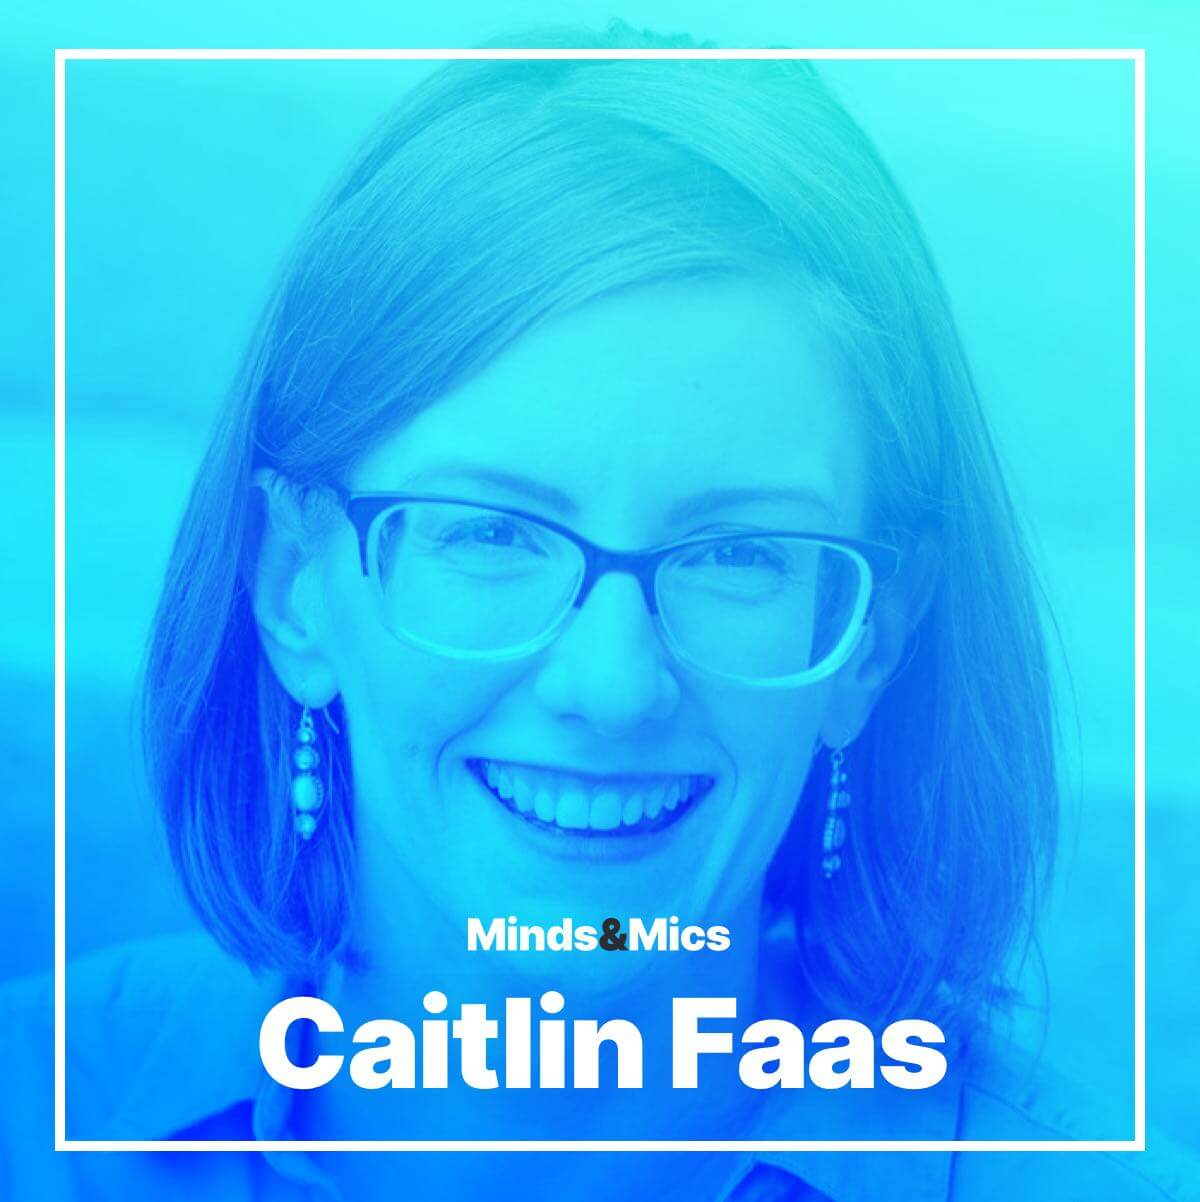 Caitlin Faas Life Coaching Wignall Minds and Mics